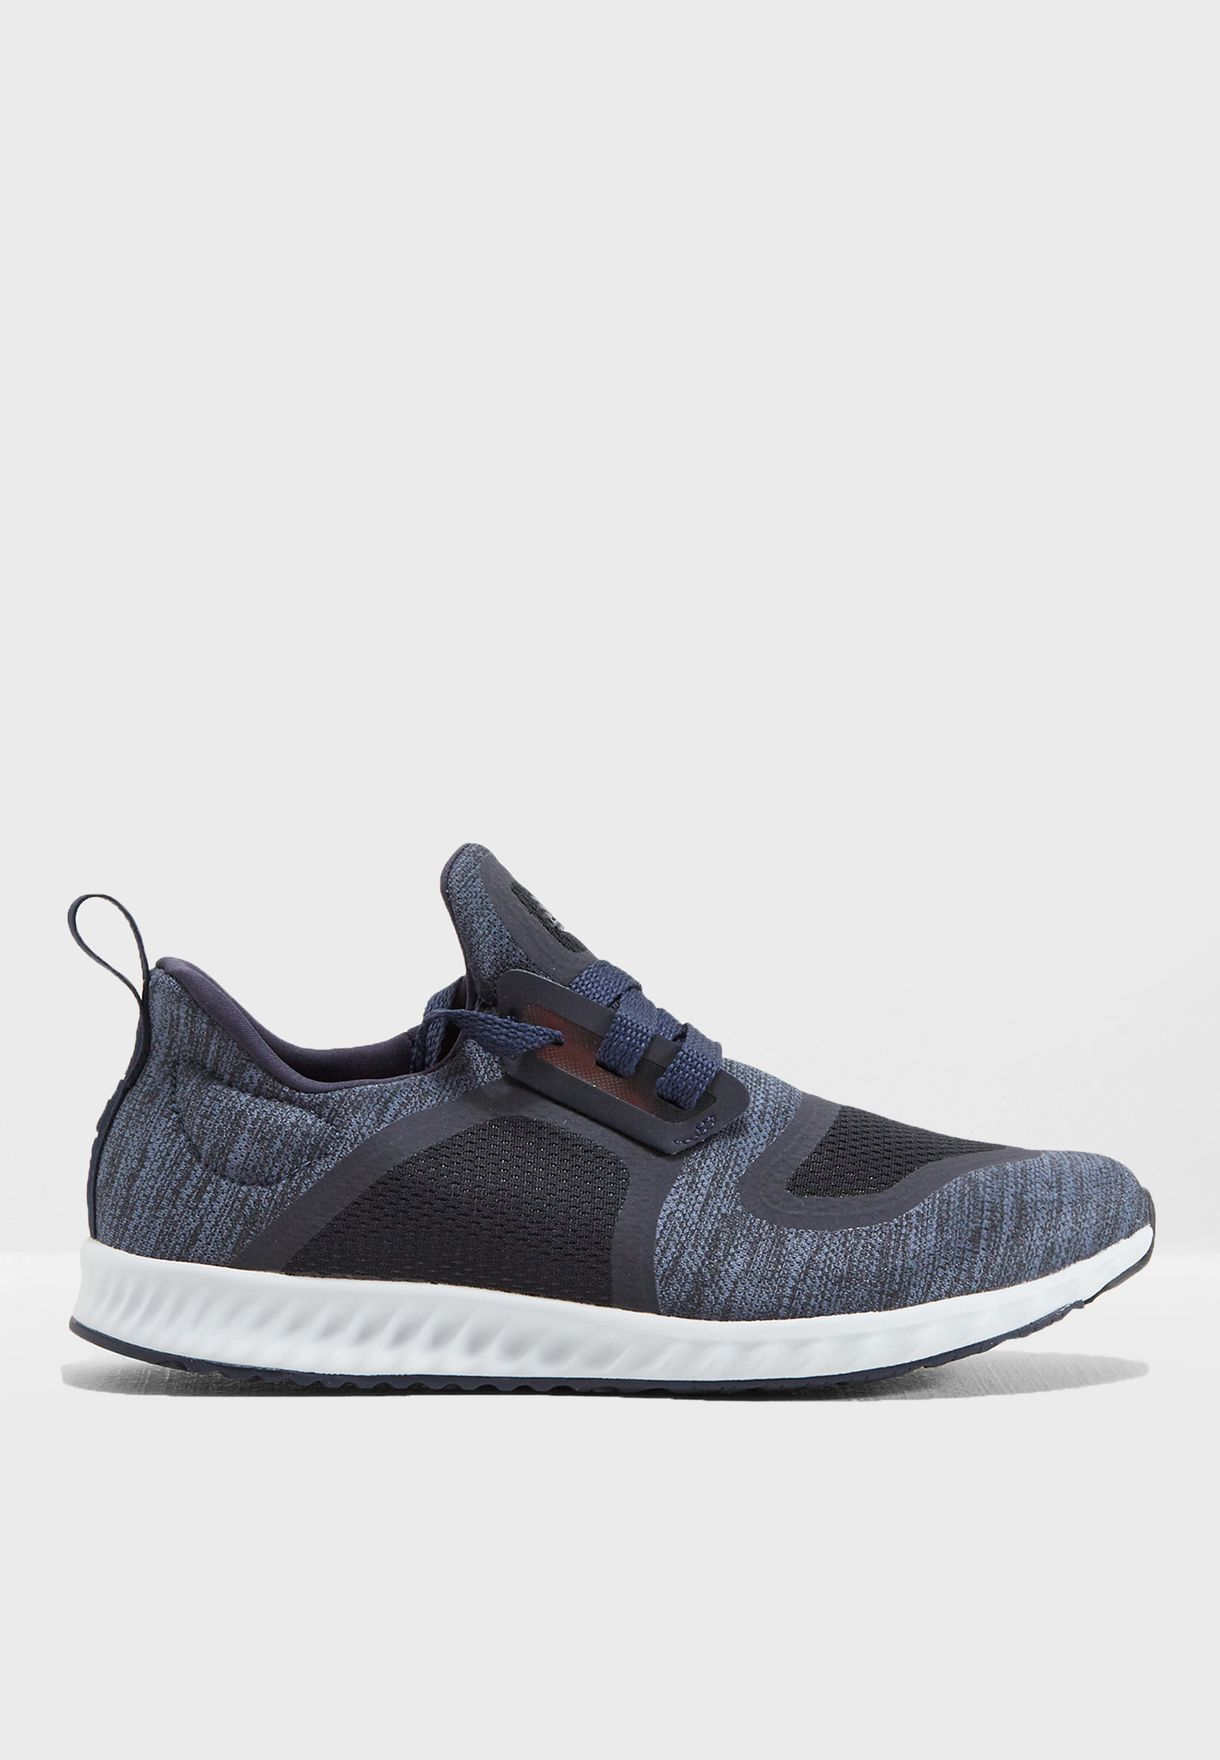 new styles f6b9d e8bf0 Shop adidas navy Edge Lux Clima AQ0065 for Women in Saudi - AD476SH43HGU